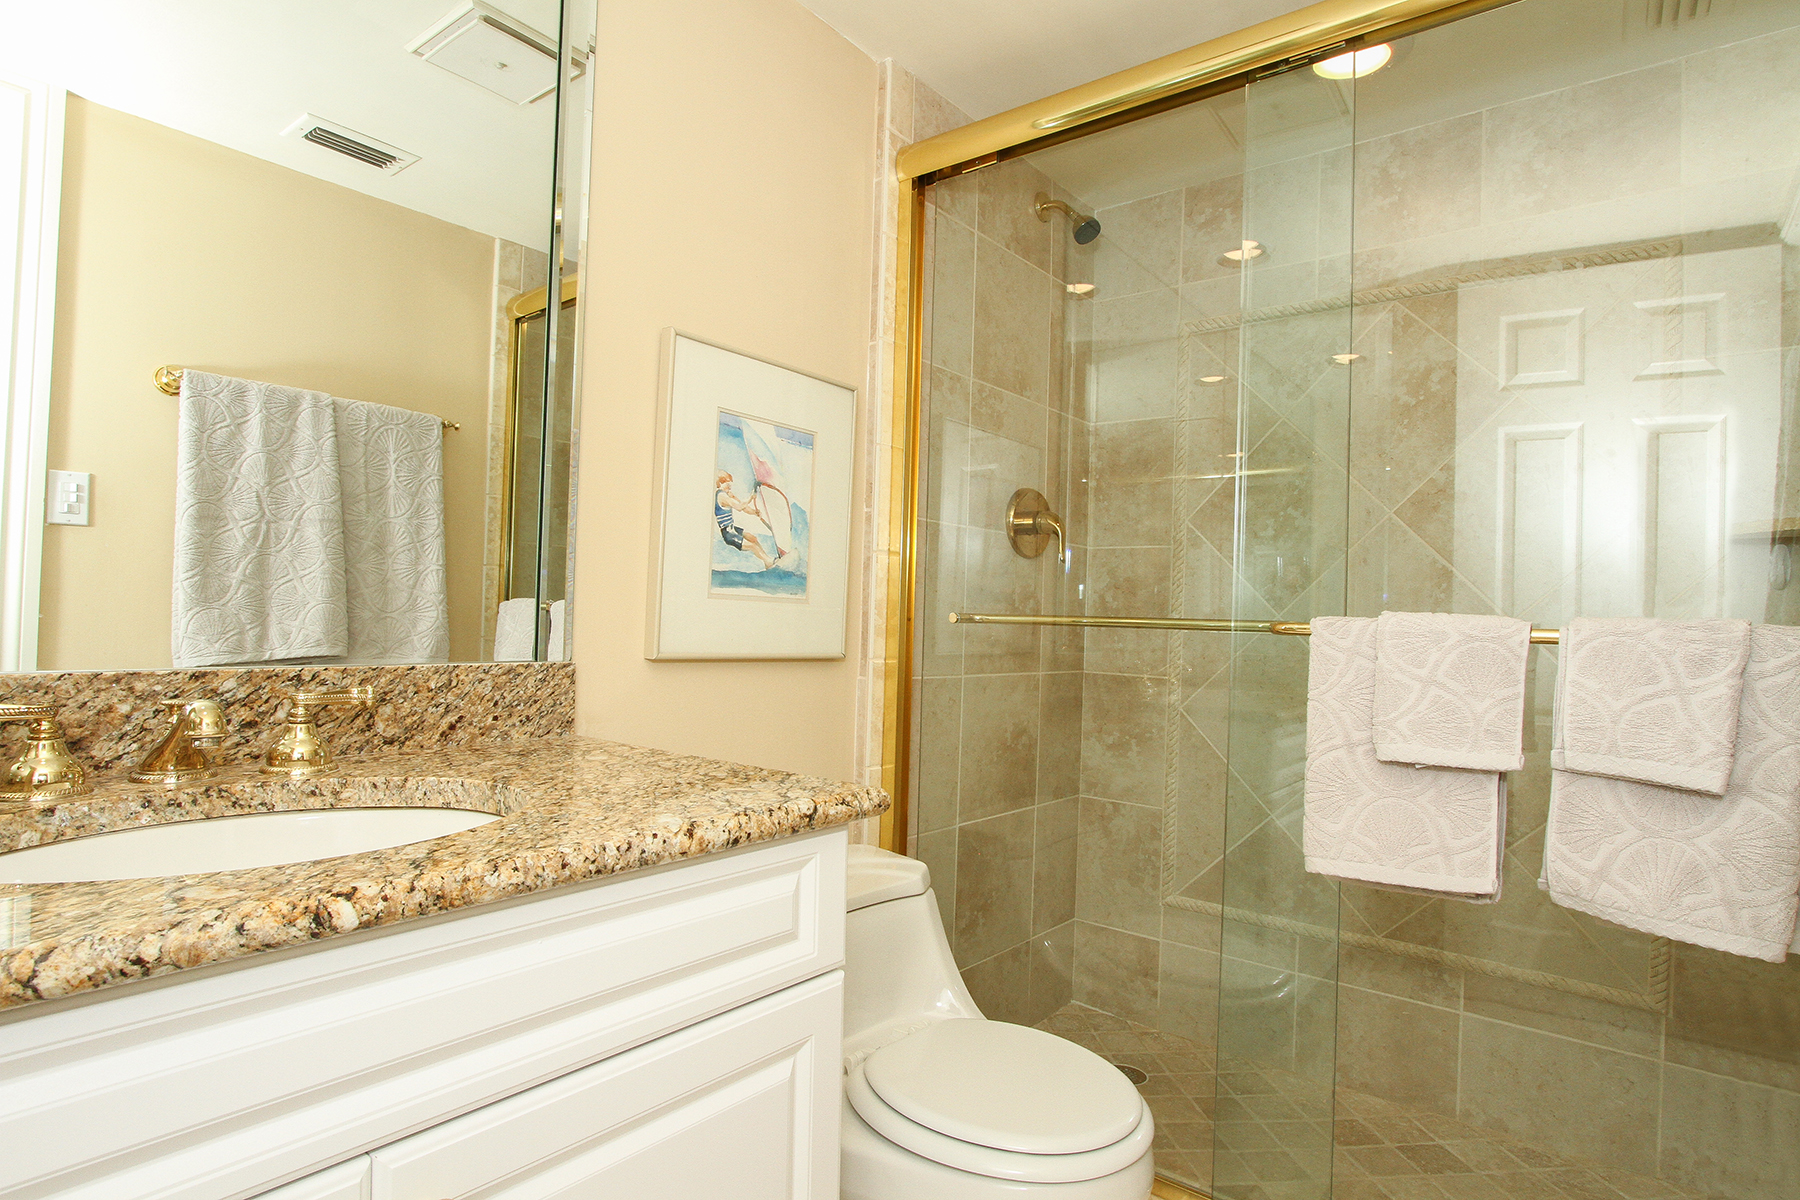 Additional photo for property listing at PELICAN BAY - CHATEAUMERE 6040  Pelican Bay Blvd D-301 Naples, Florida 34108 United States